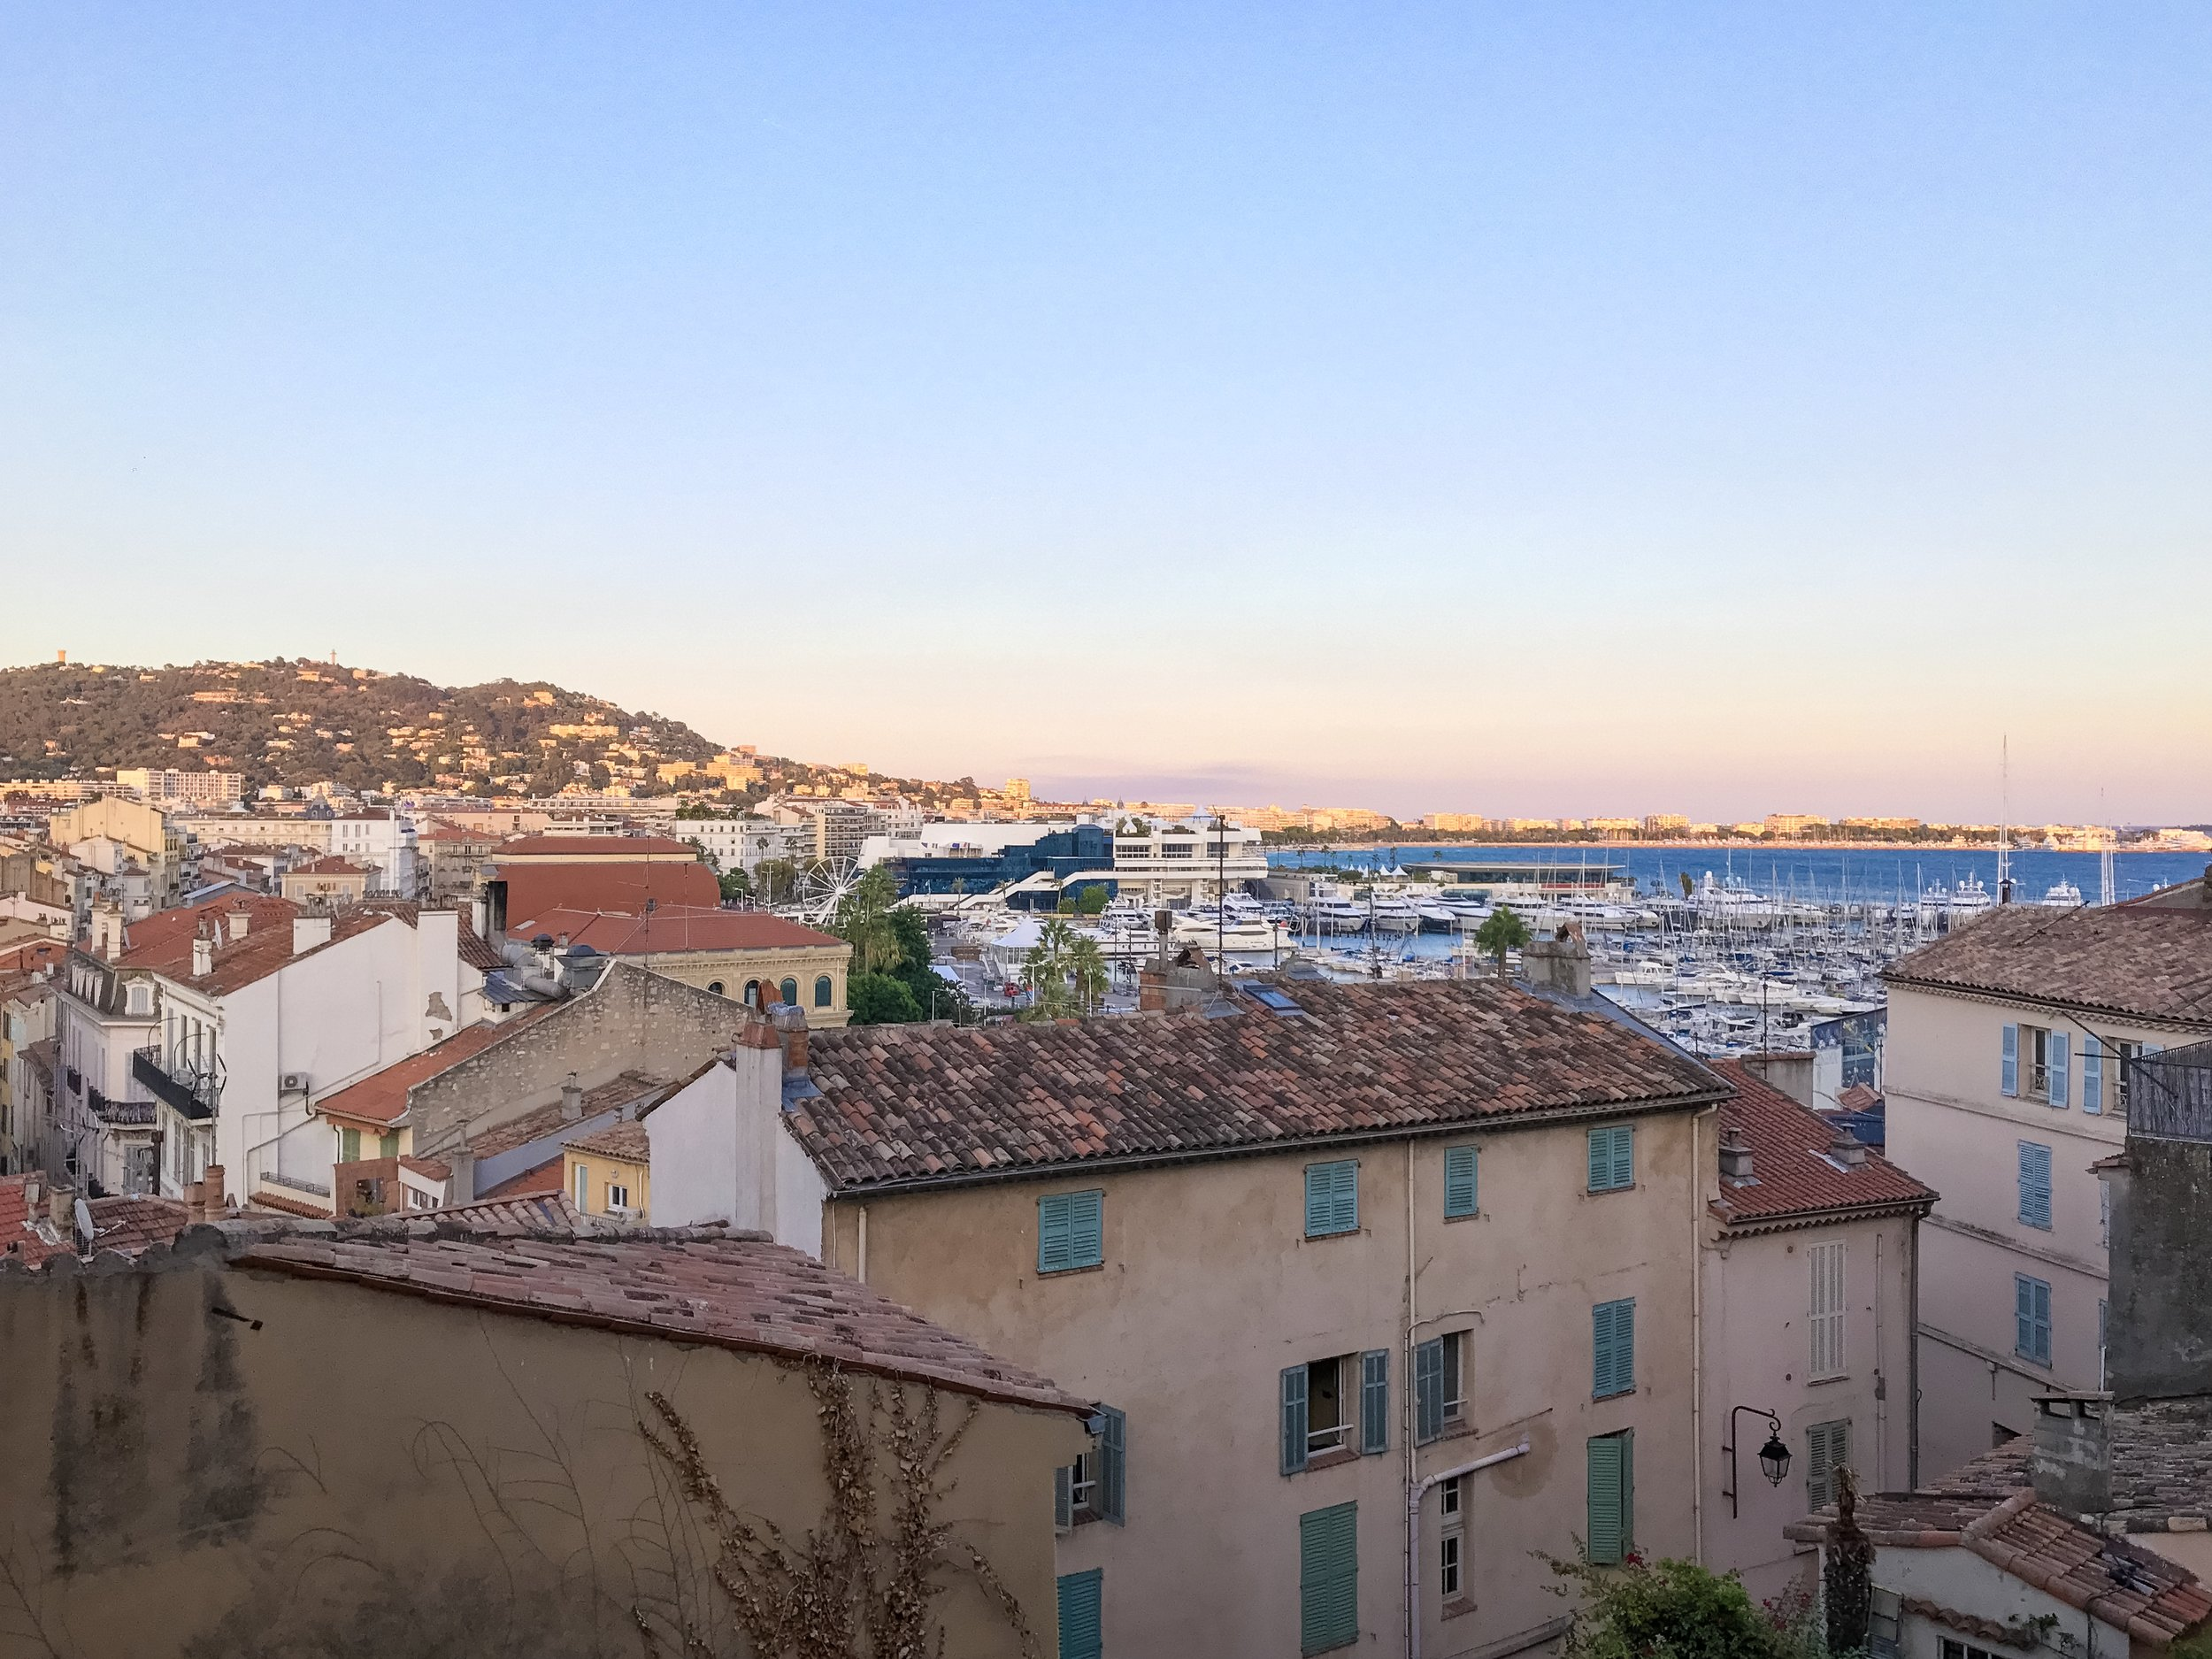 Watching the sunset from our Airbnb in Cannes